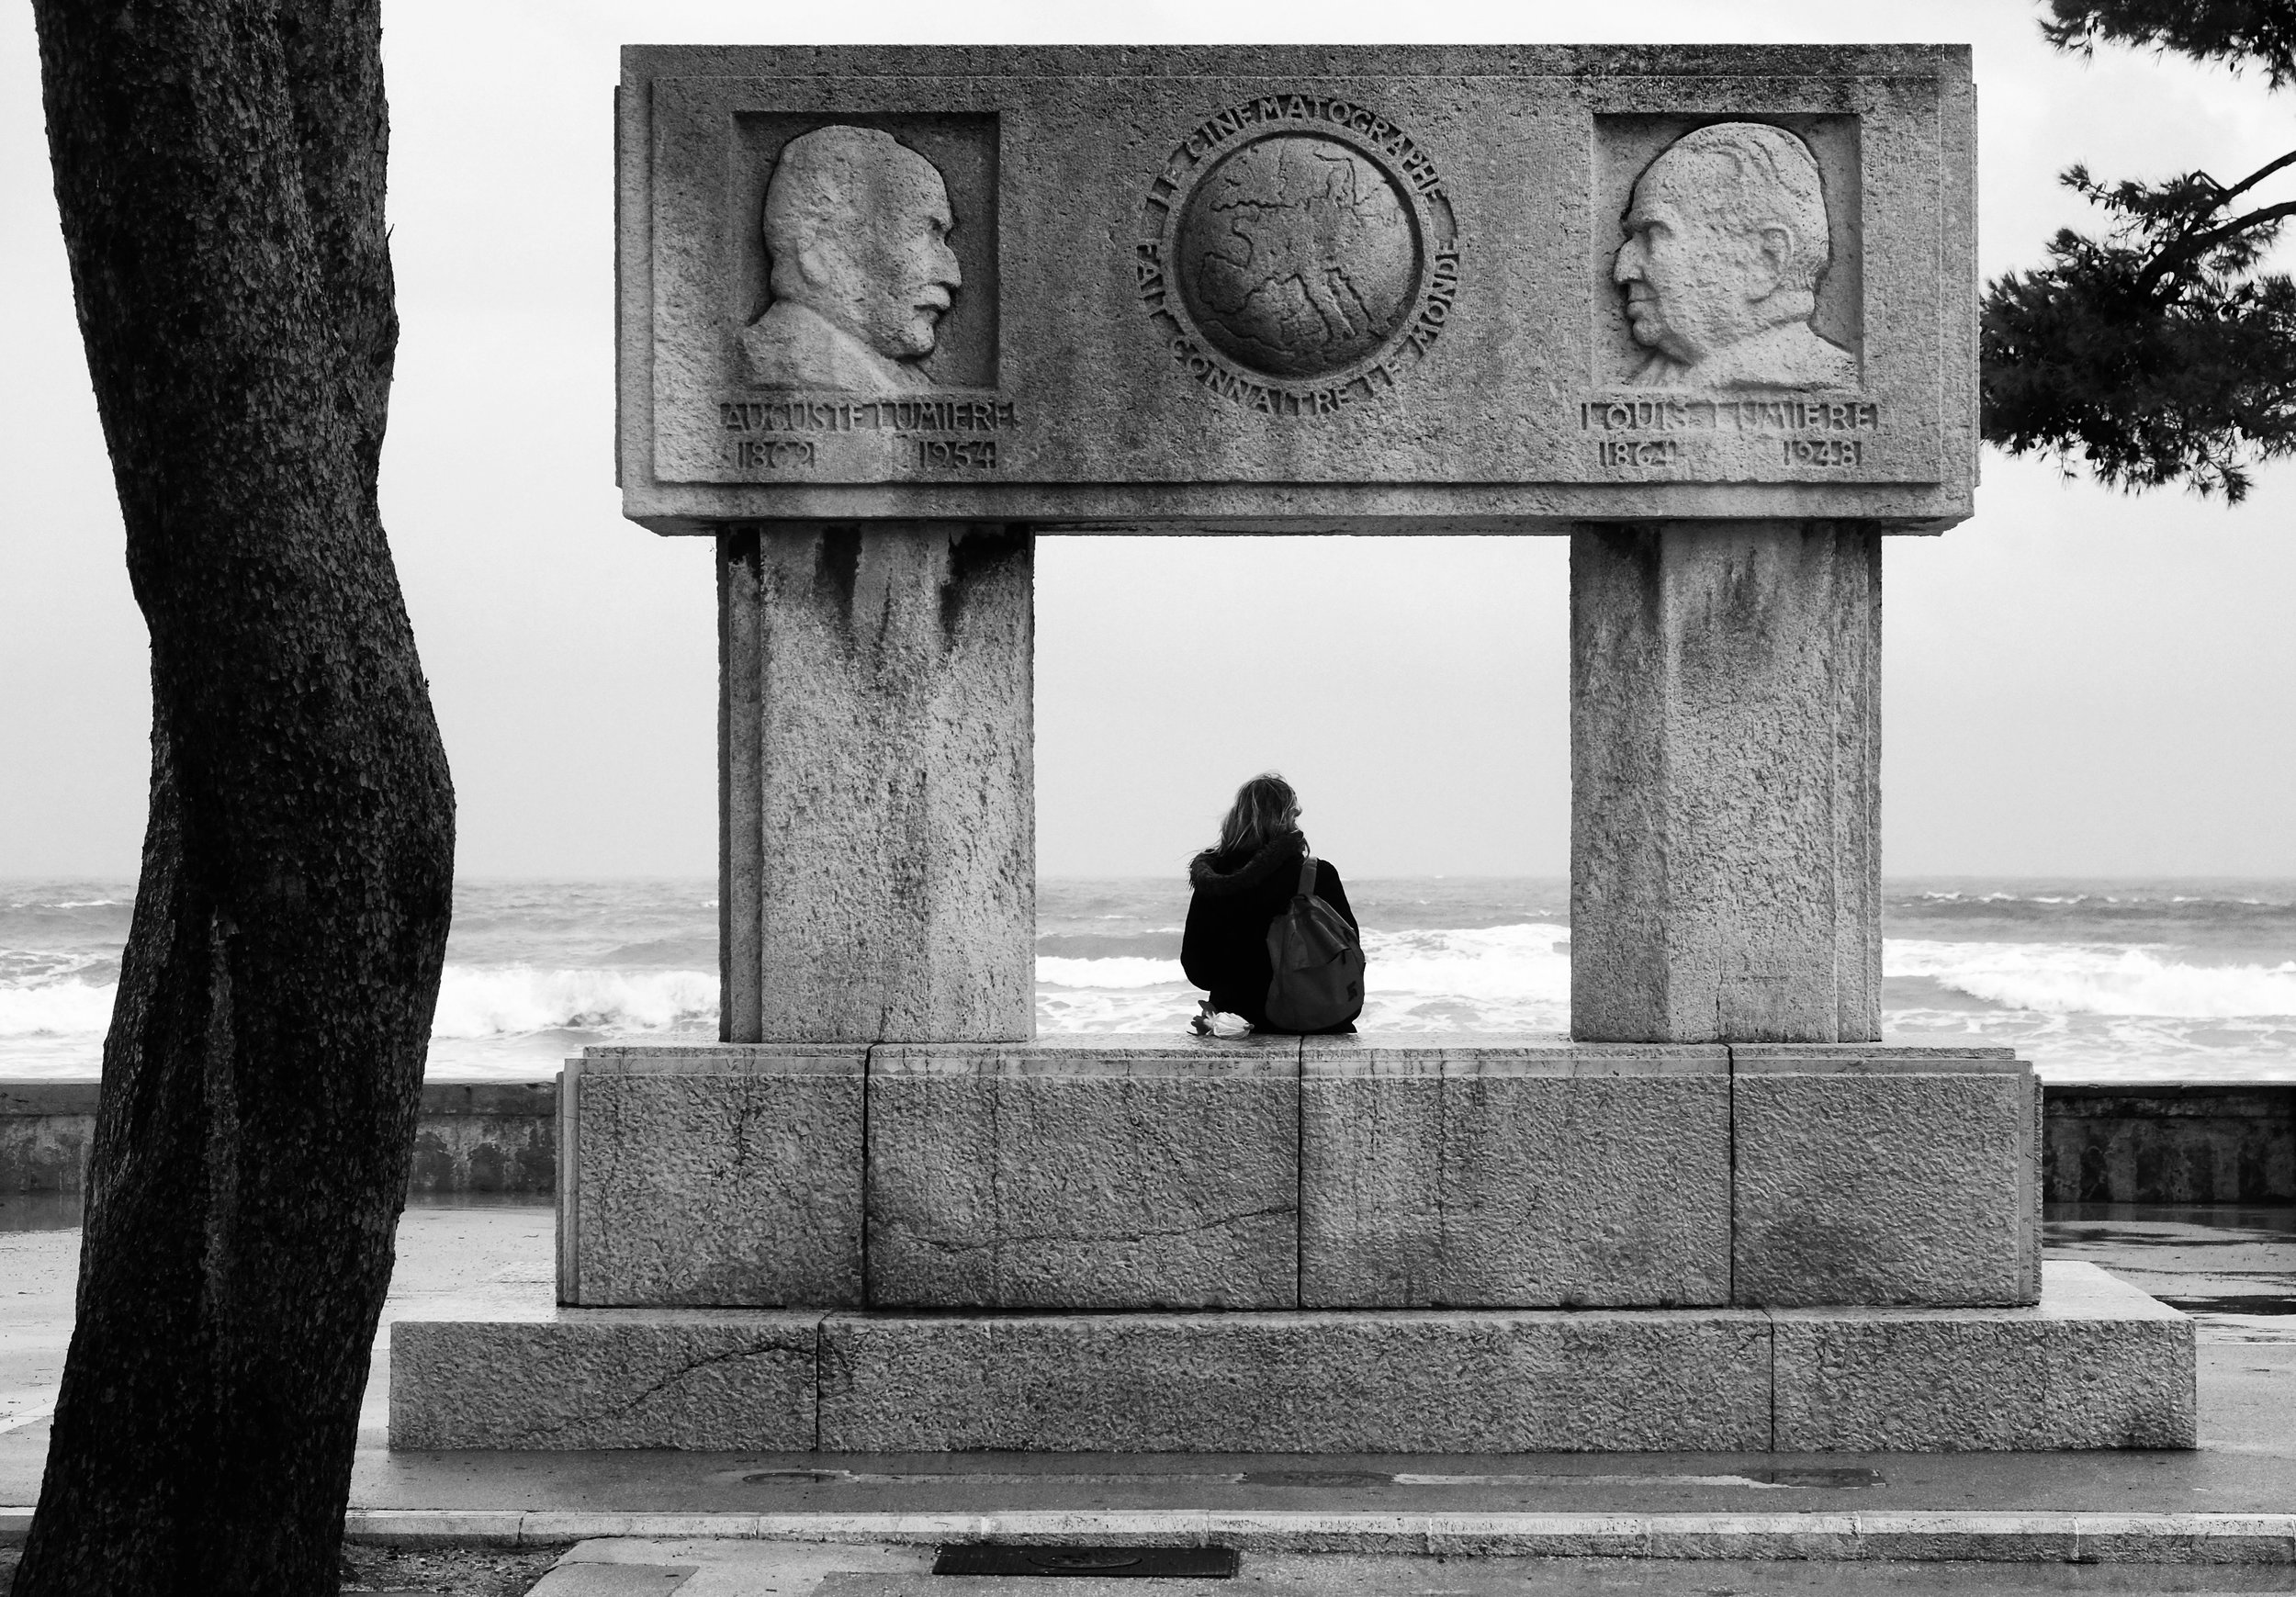 Statue dedicated to the Lumière brothers, who showed the first film ever in La Ciotat, France  Taken By: Dave Lyon - Dec 2017